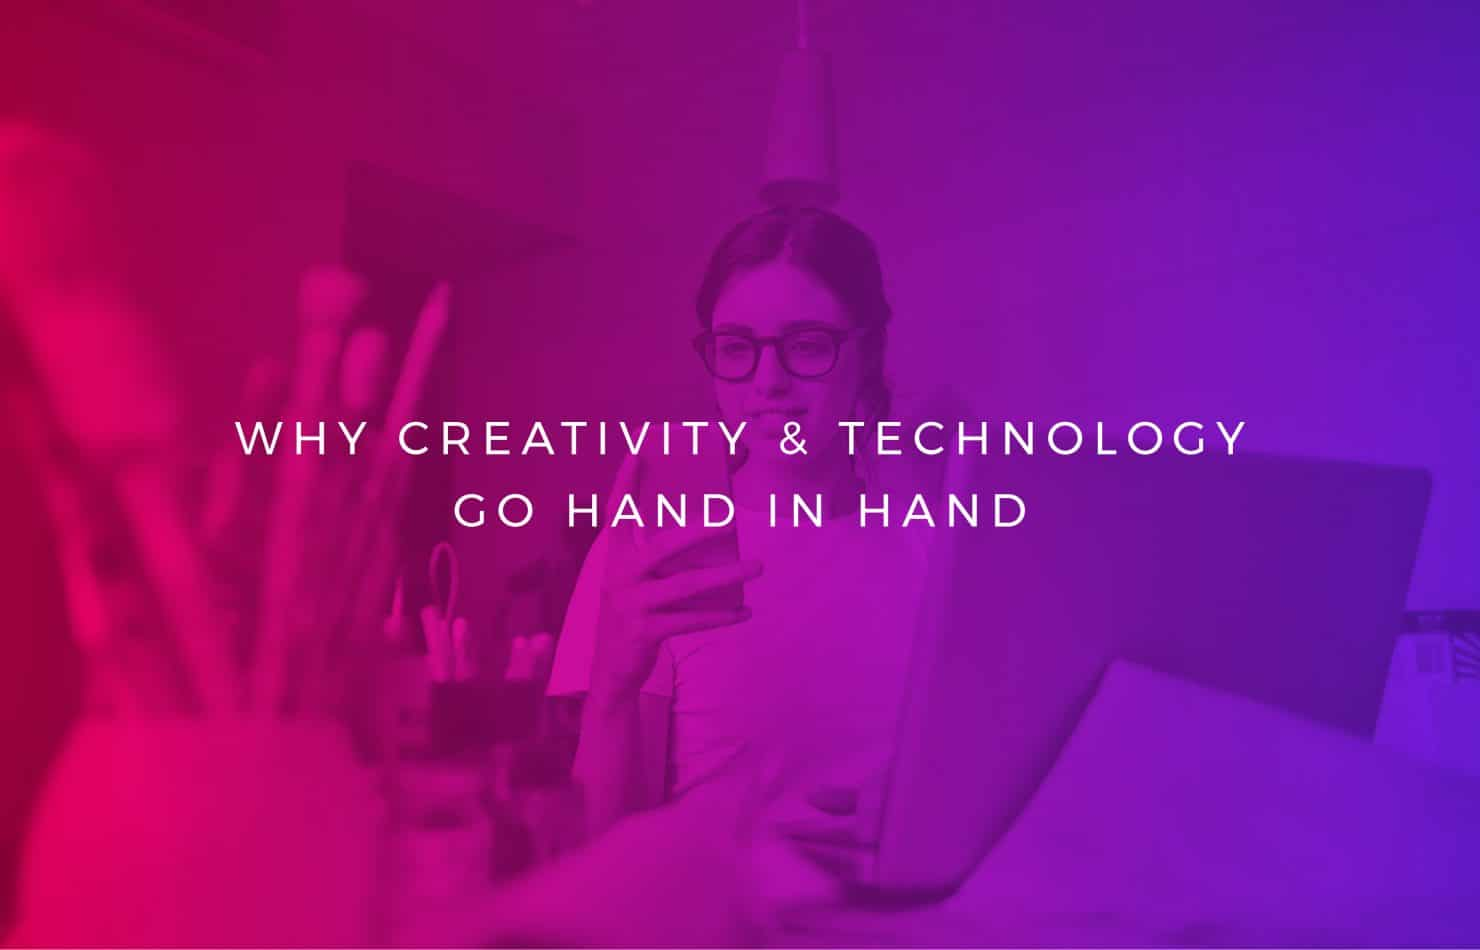 Why creativity and technology go hand in hand